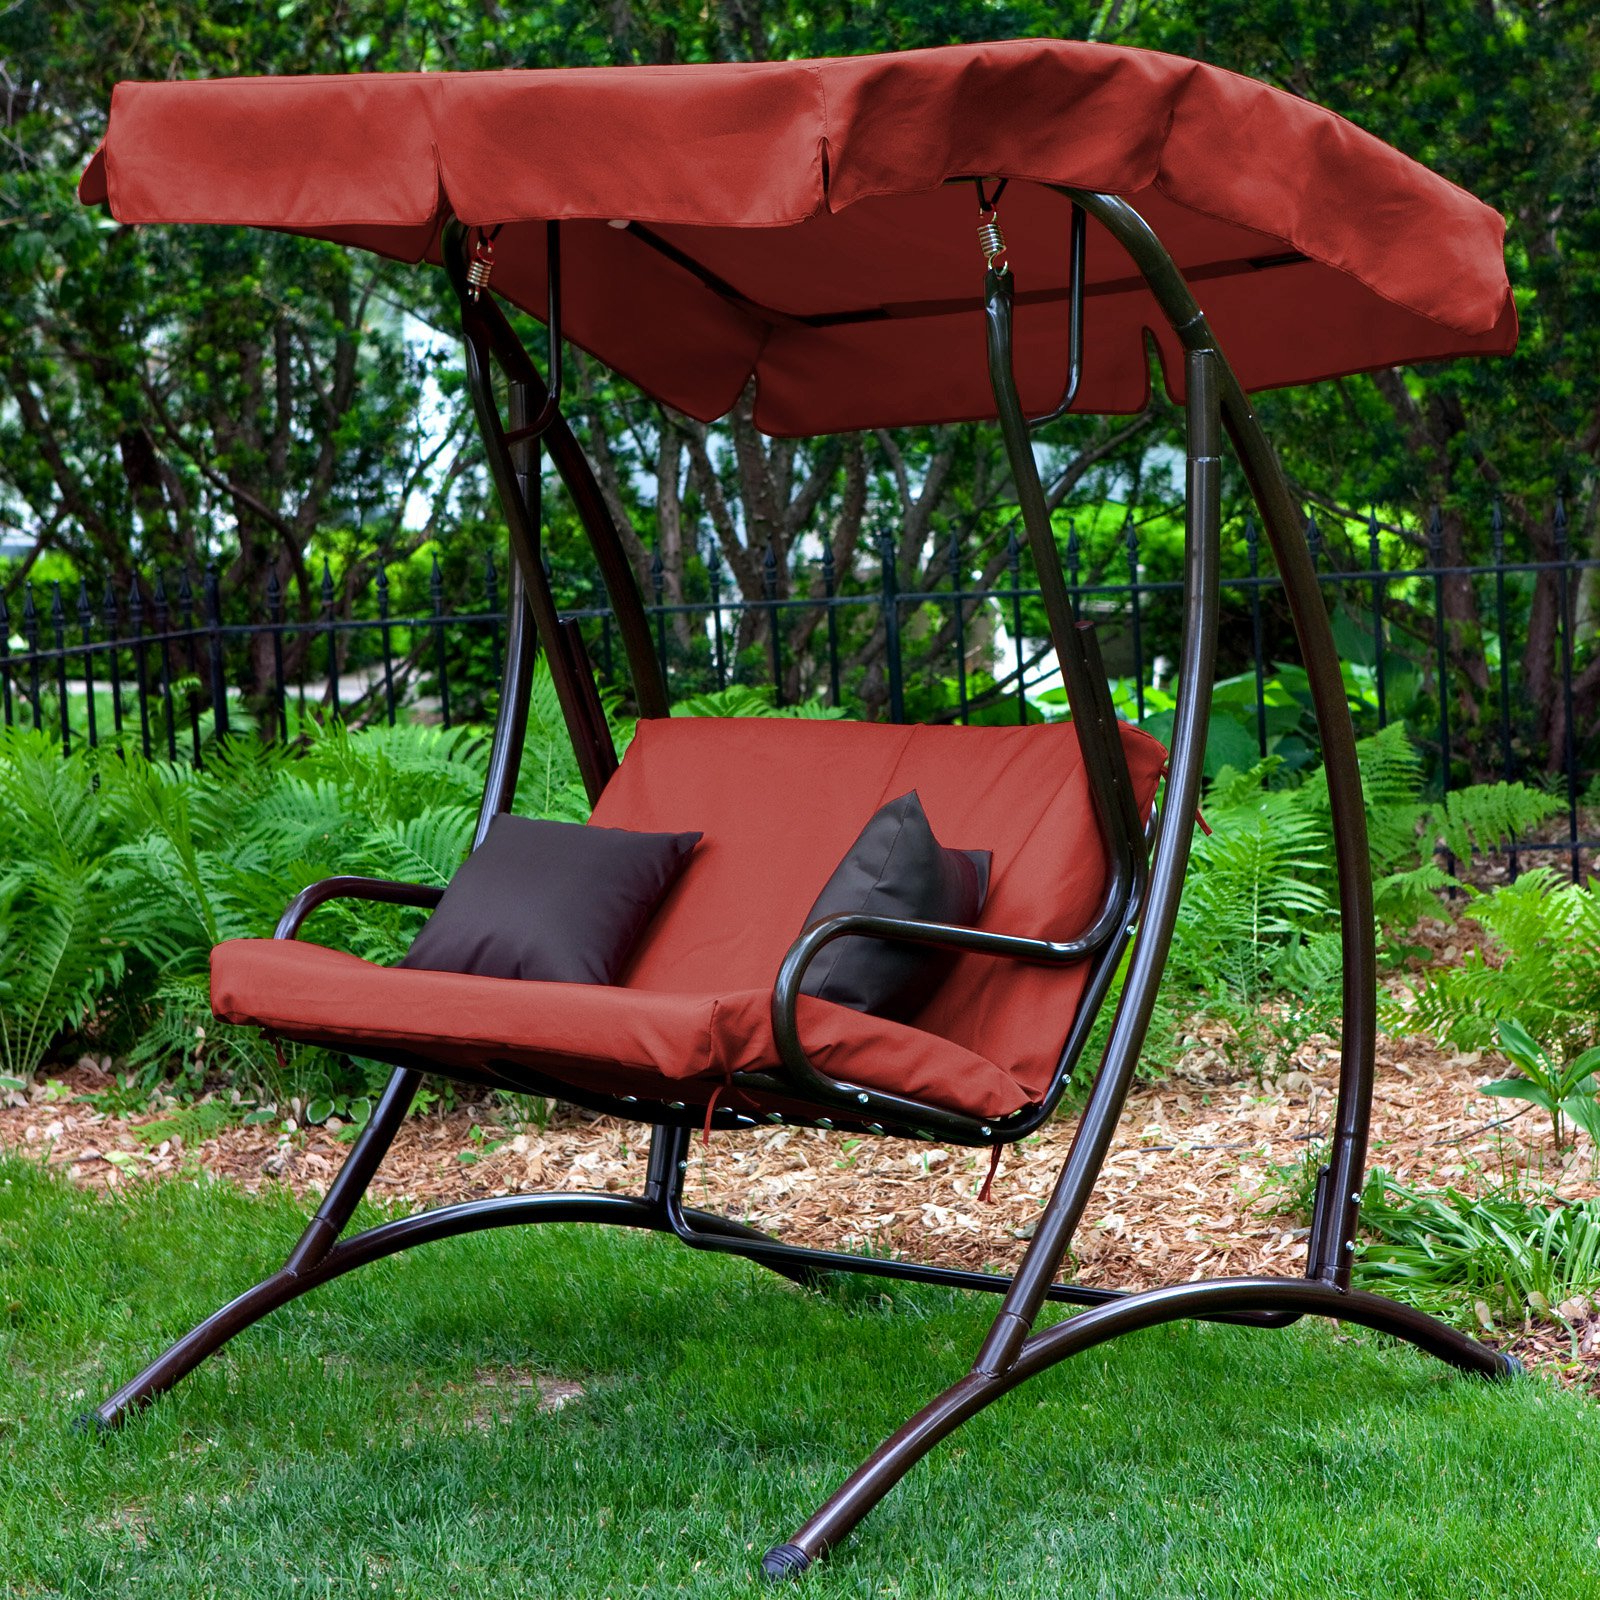 How To Replace A Canopy On An Outdoor Swing (View 17 of 30)